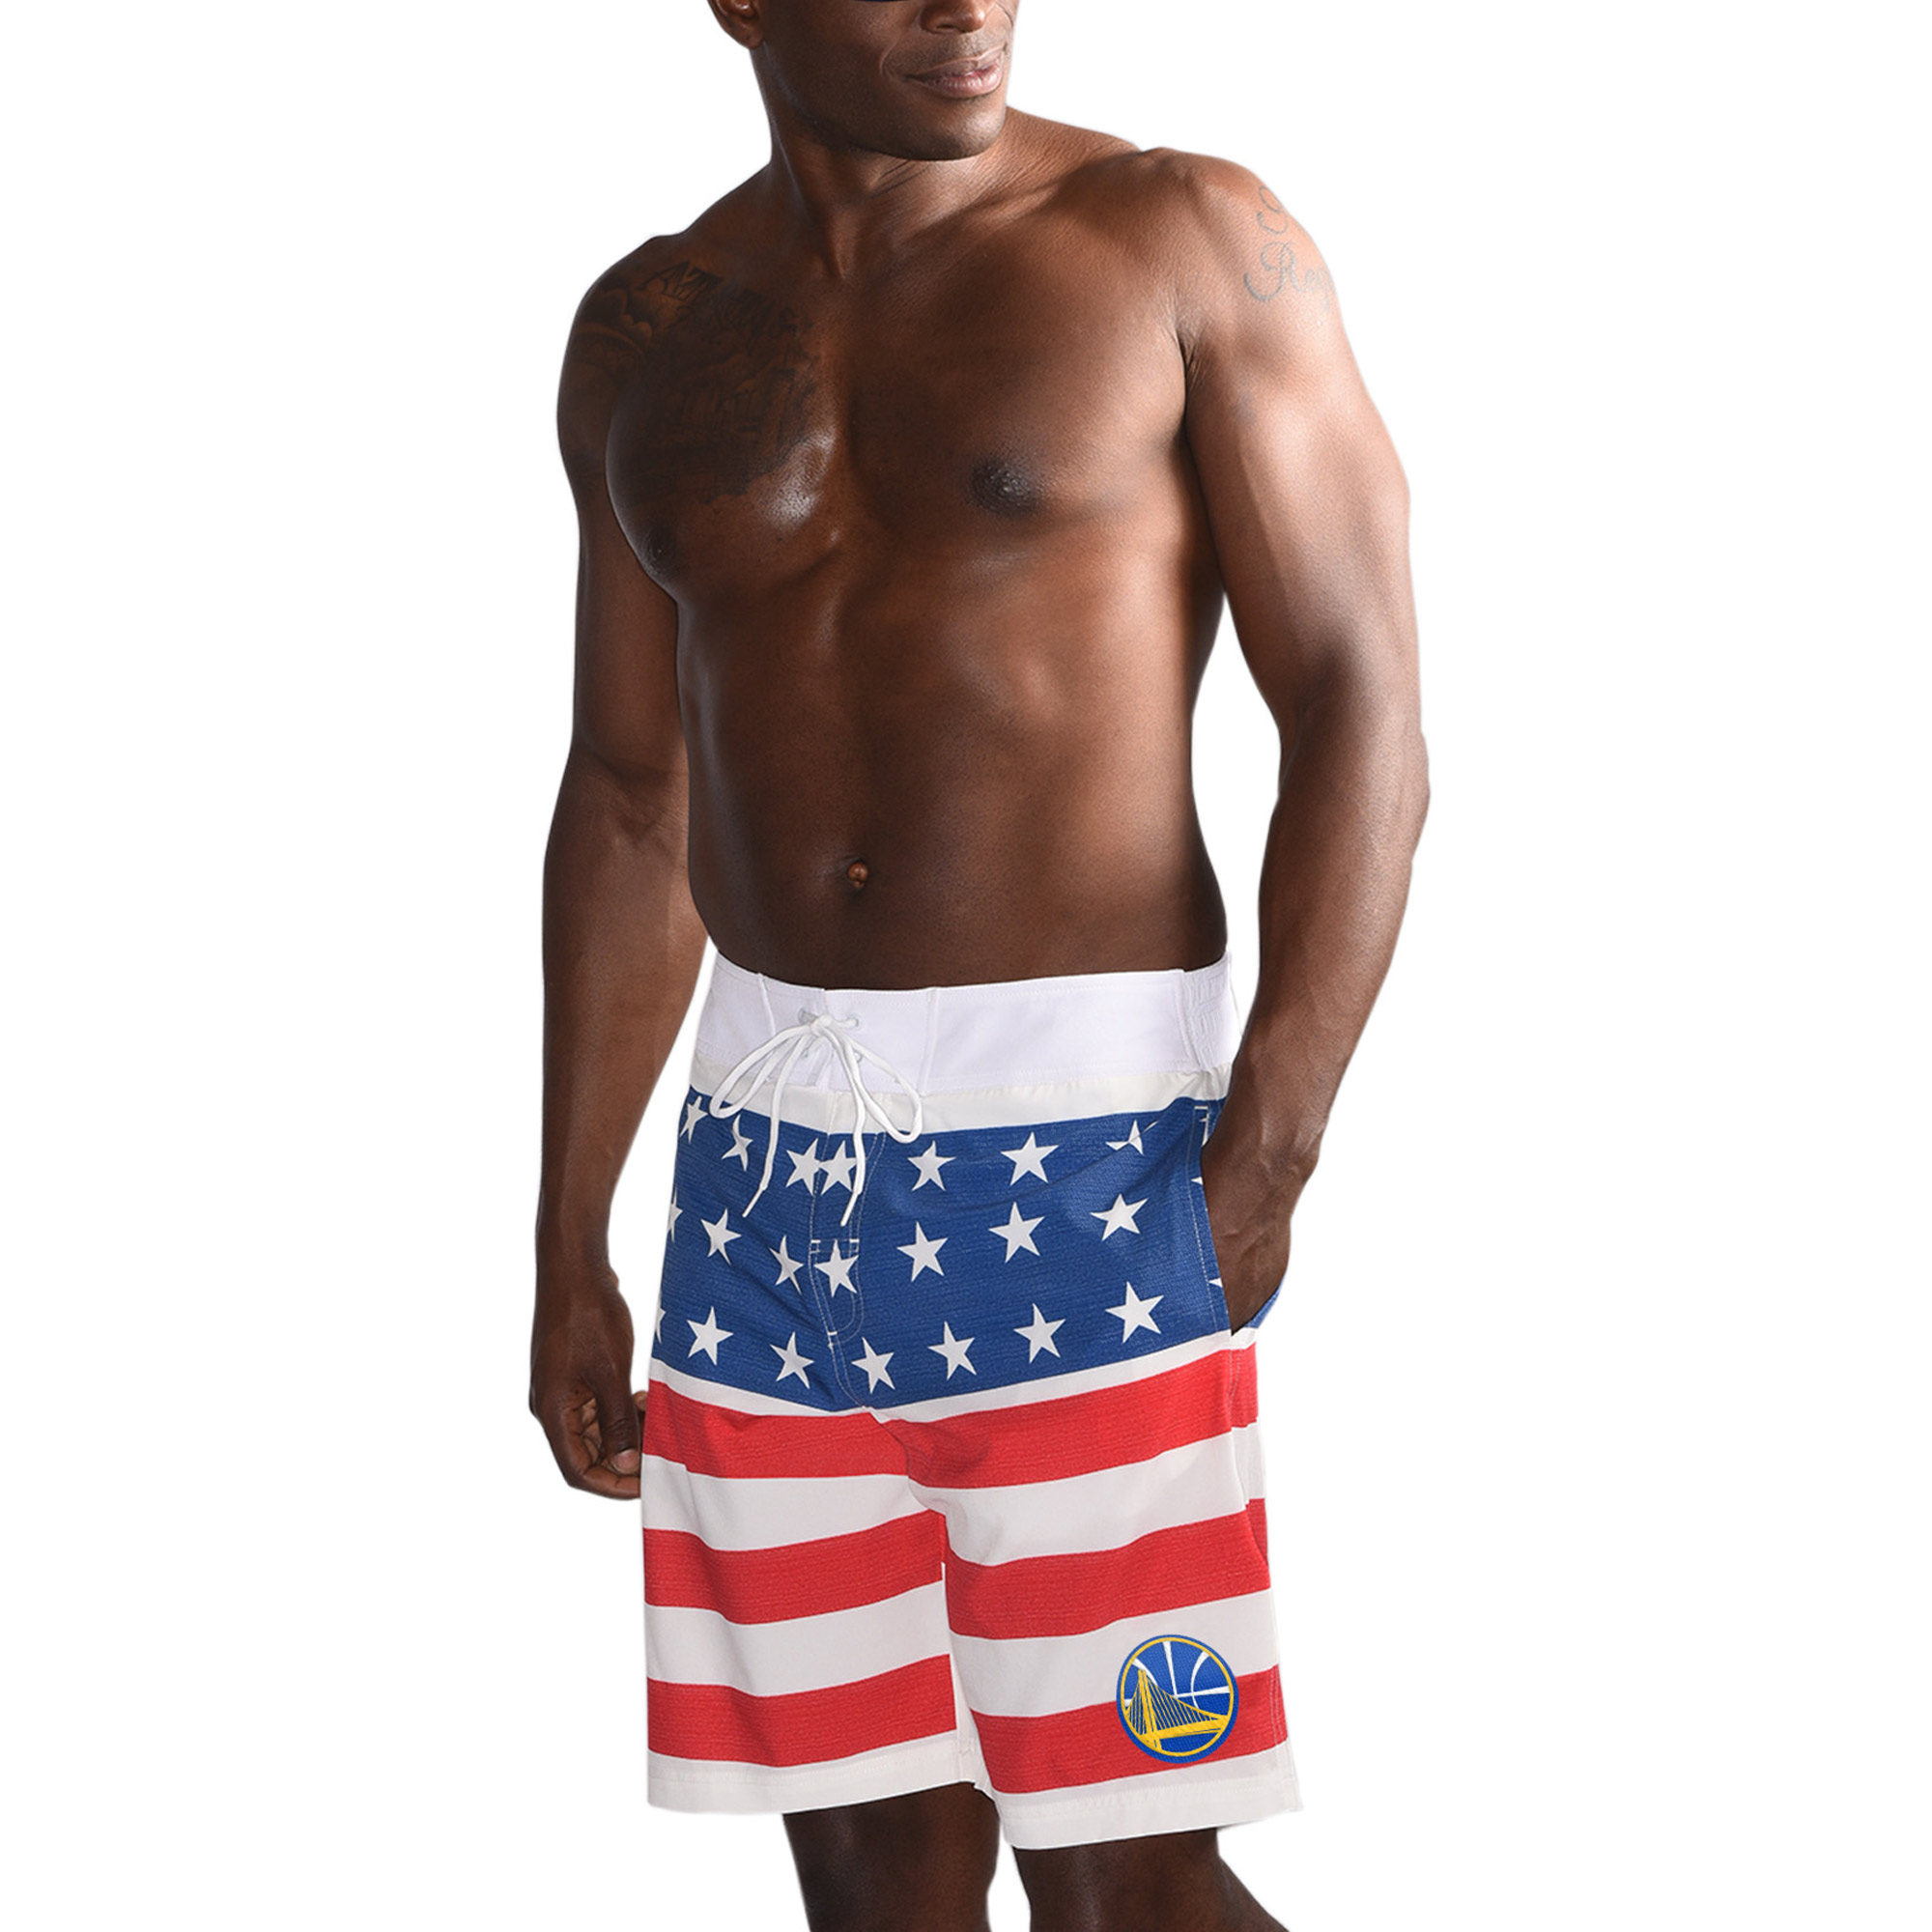 Golden State Warriors G-III Sports by Carl Banks Patriotic Swim Trunks - Red/Blue